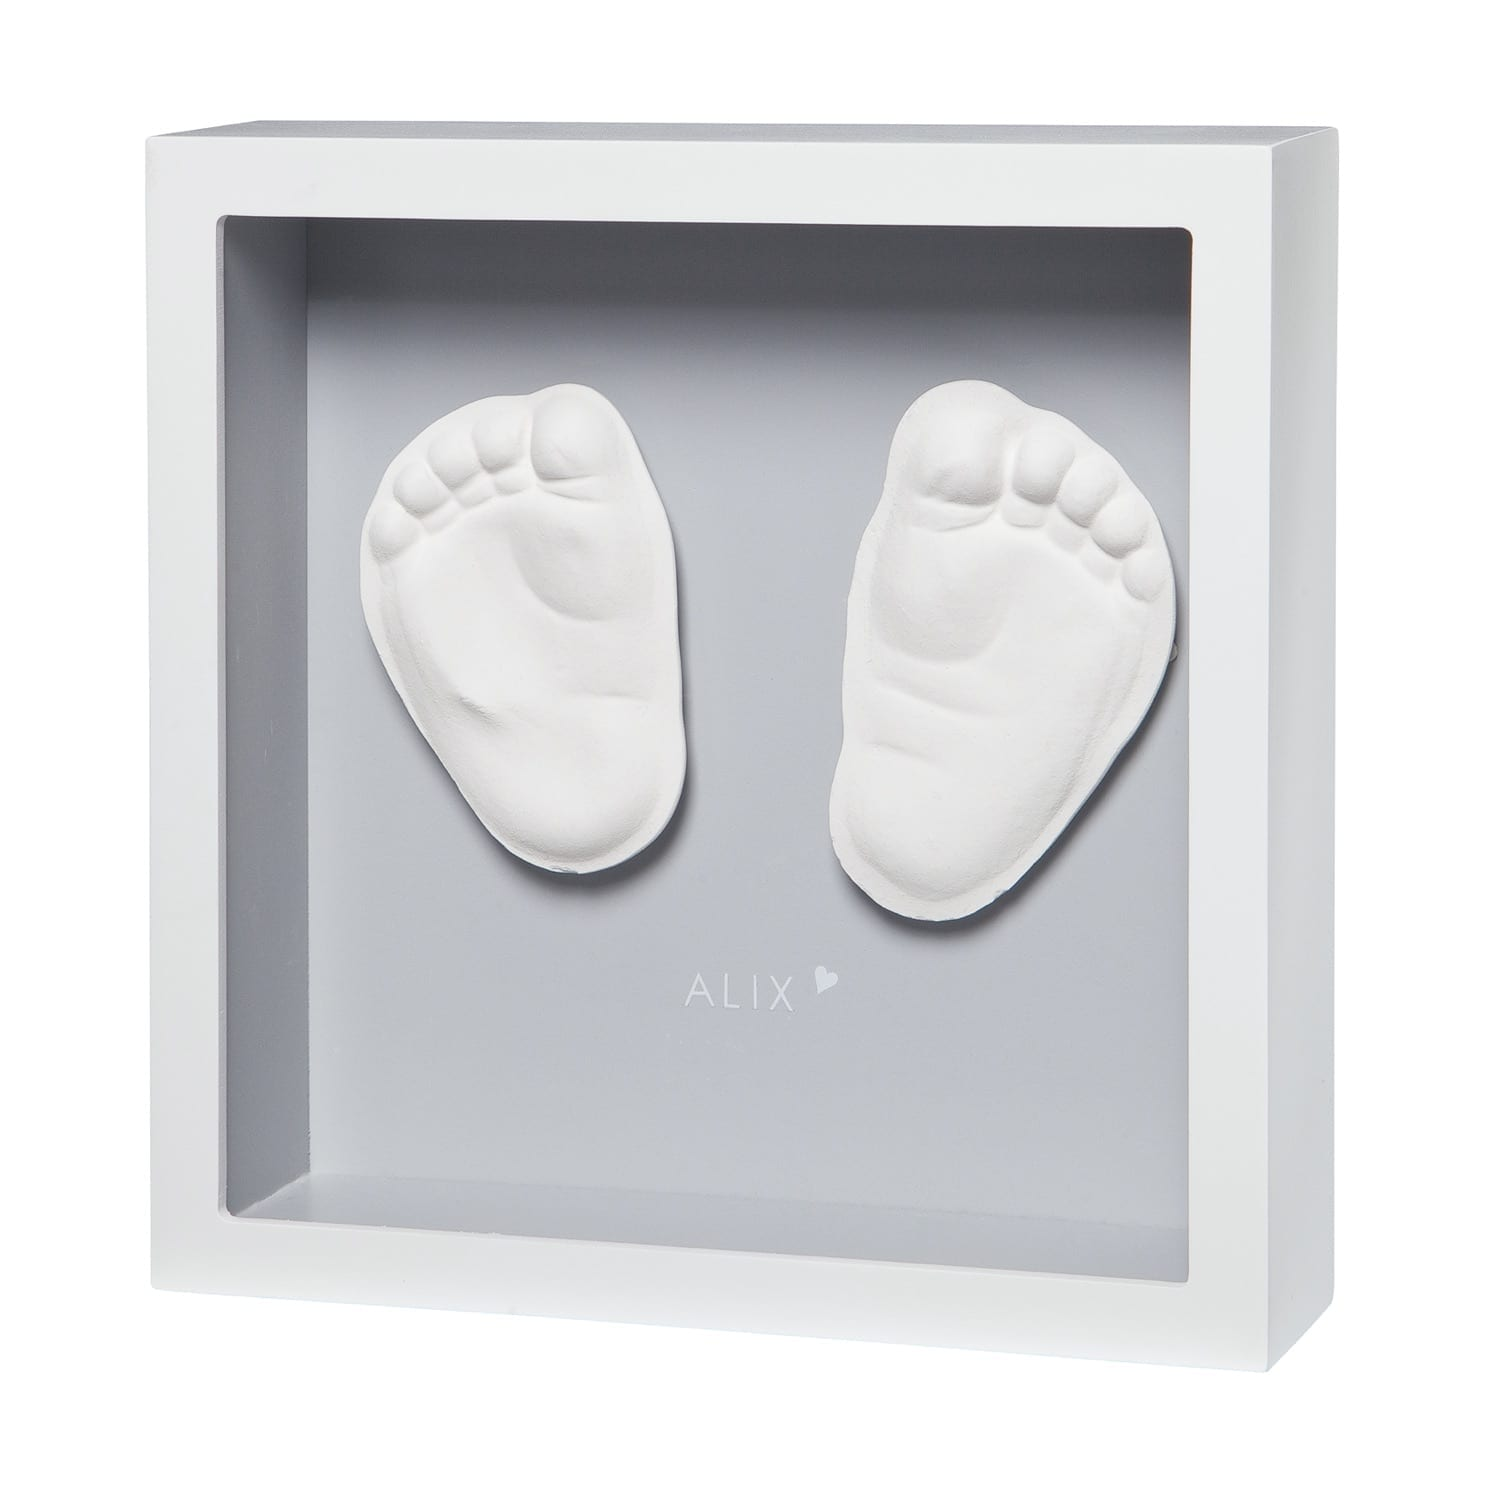 Baby Art – My little steps window sculpture product image